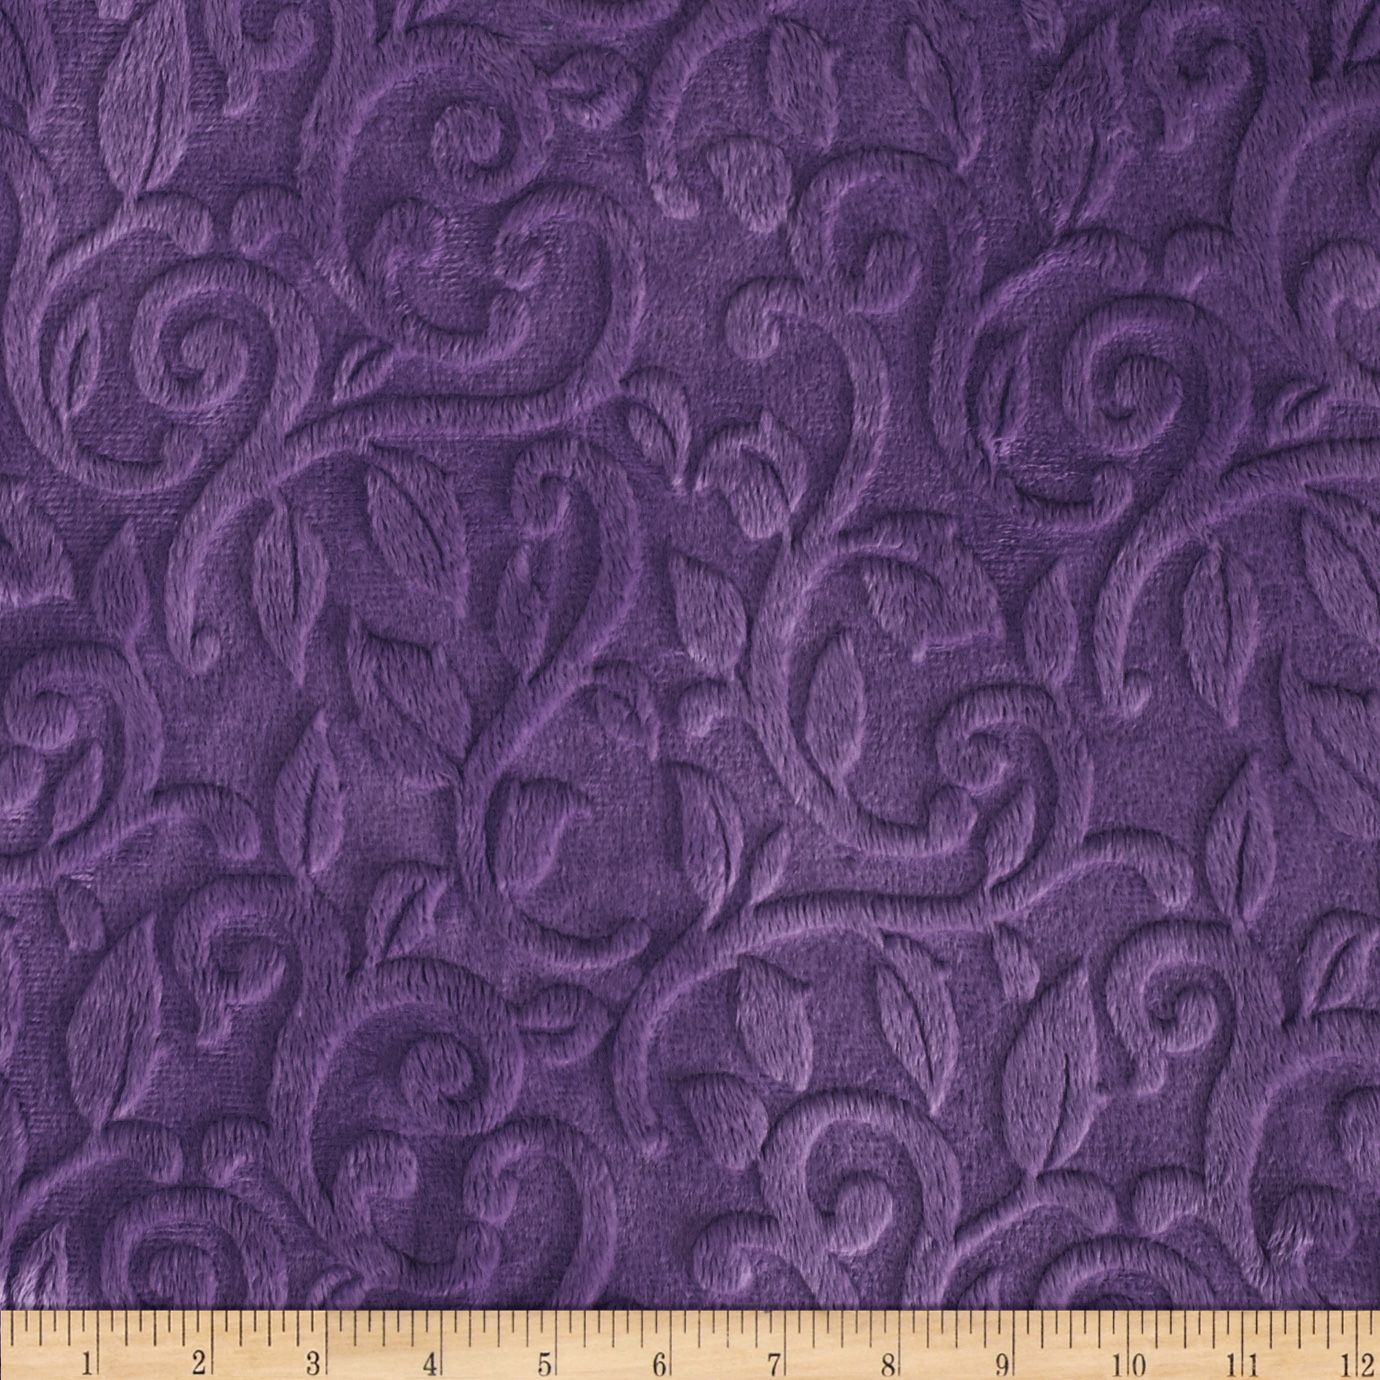 Shannon_Minky_Cuddle_Embossed_Vine_Violet_Fabric